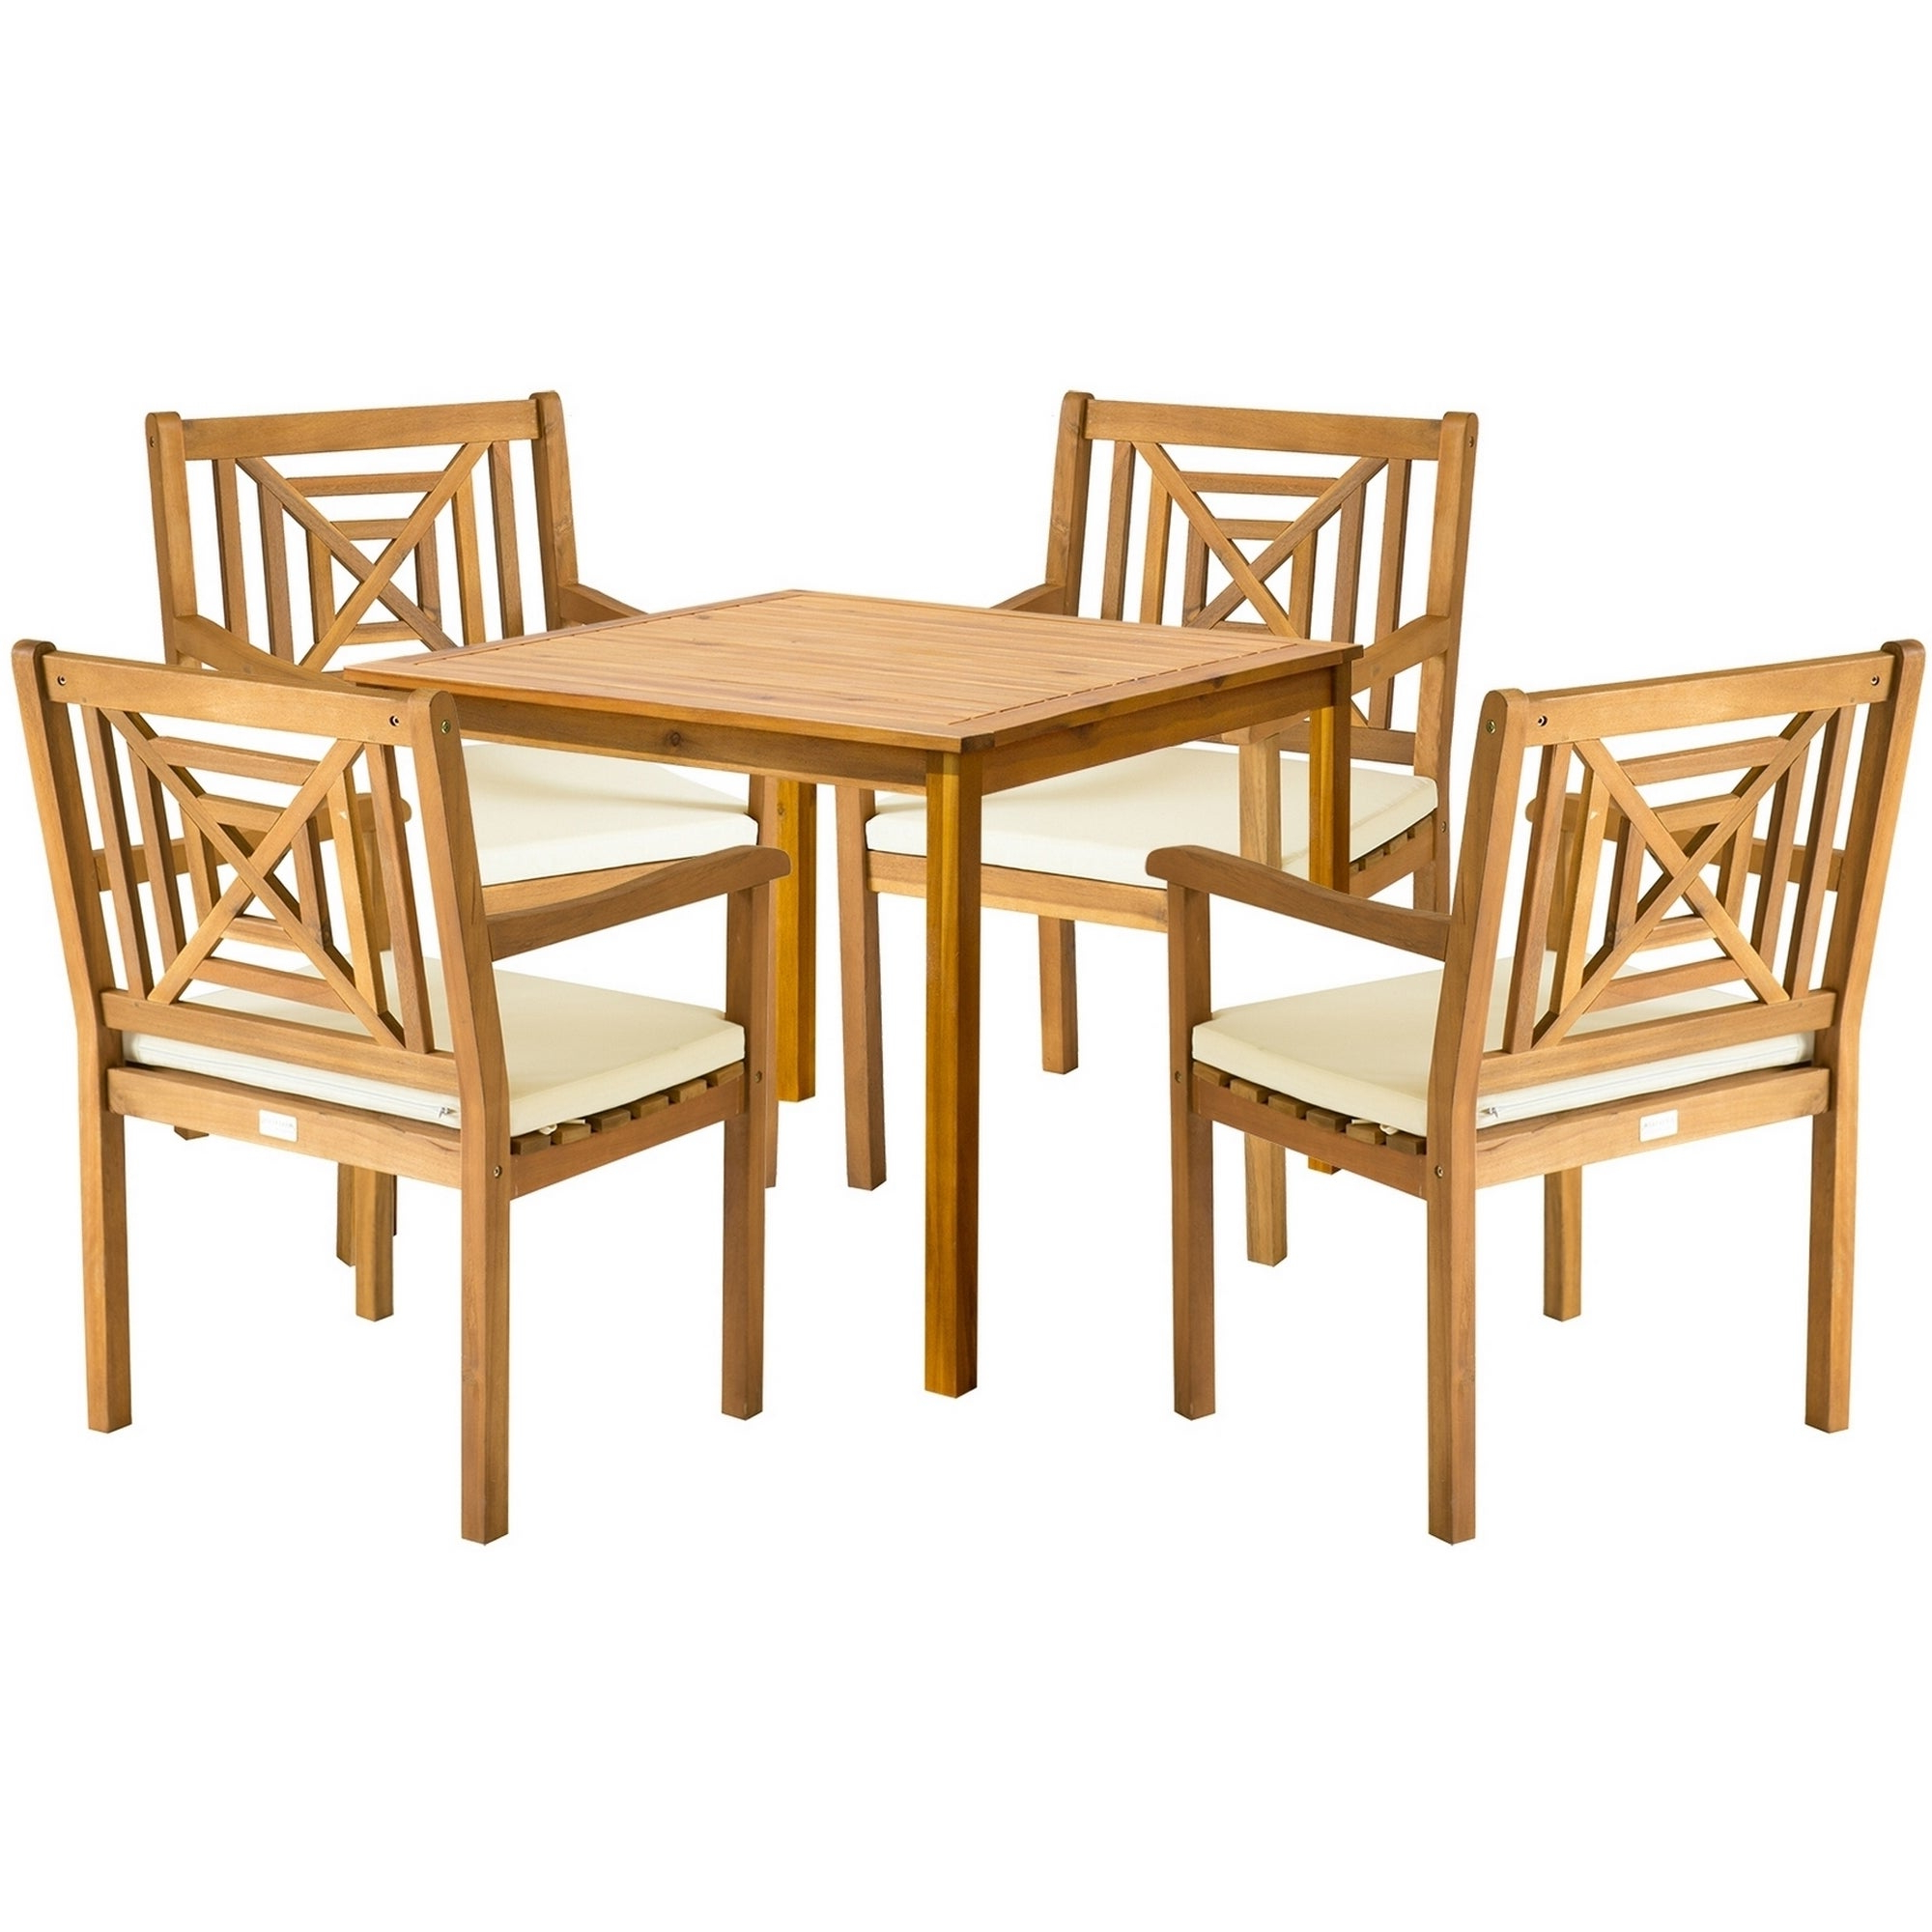 Shop Safavieh Outdoor Living Del Mar Brown Acacia Wood 5 Piece Beige Intended For Most Recently Released Delmar 5 Piece Dining Sets (View 16 of 25)